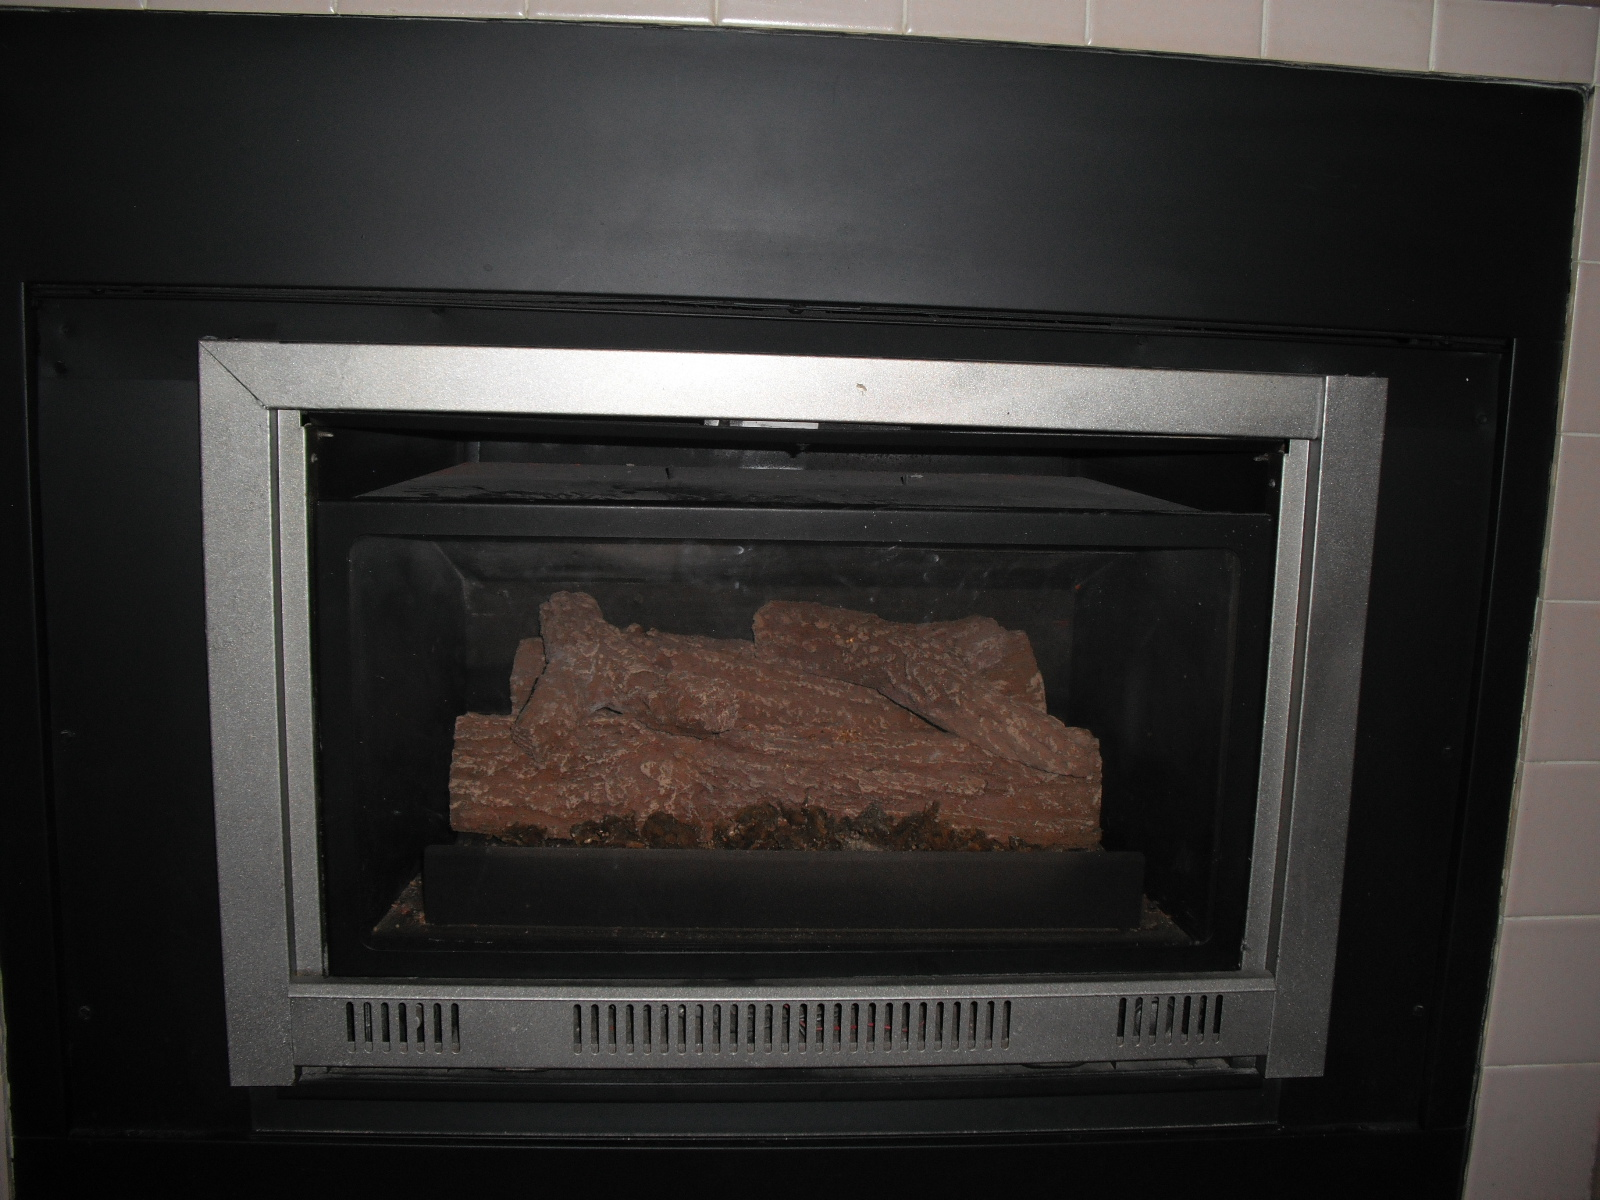 Gas Fireplace Faq How Do I Close The Flue On My Gas Fireplace Fireplaces Cleaning